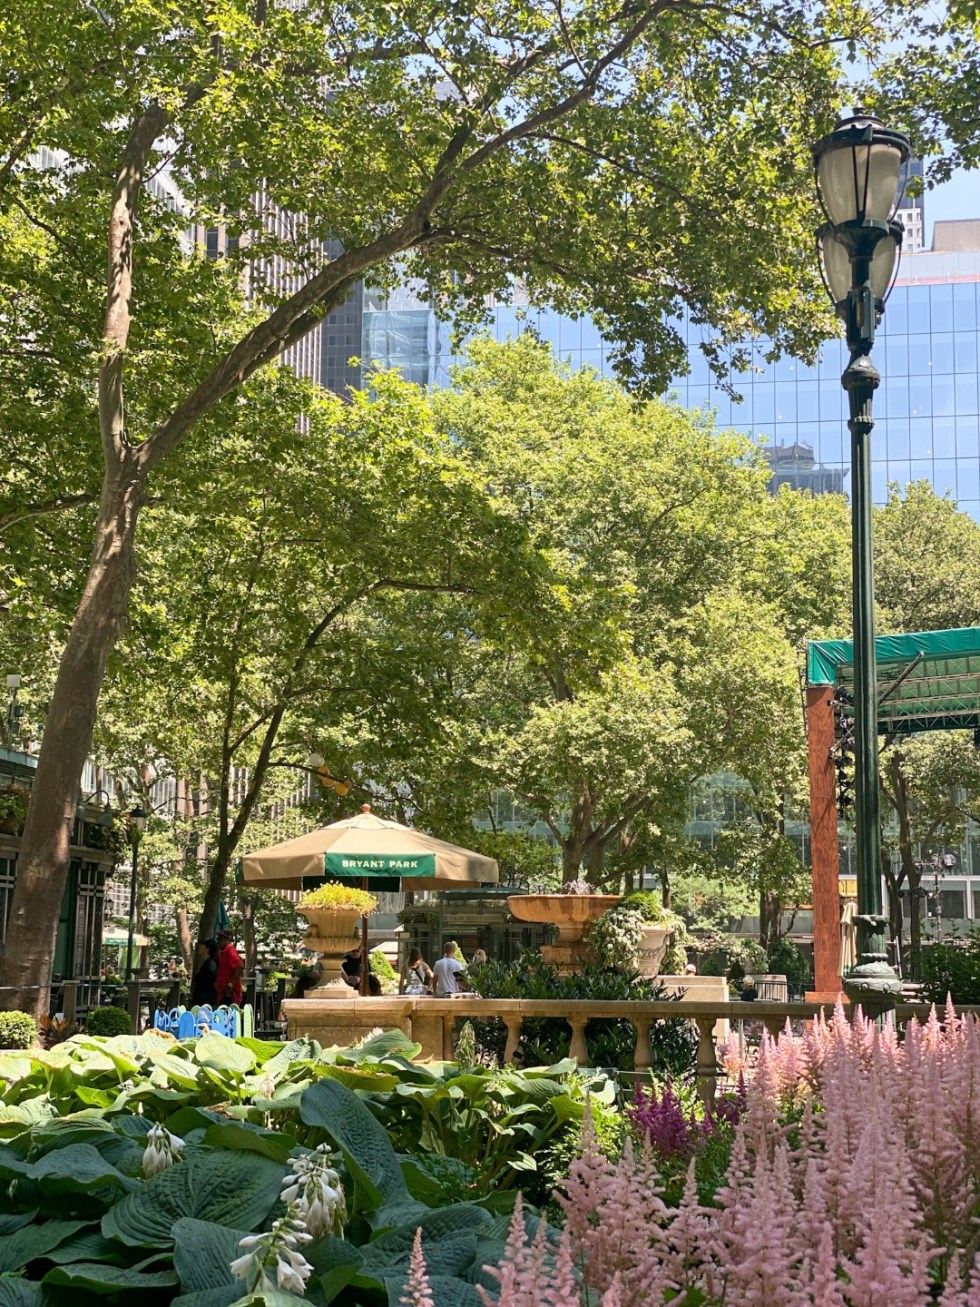 NYC Summer Weekend: Things to Do in NYC in the Summer - I'm Fixin' To - @imfixintoblog   NYC Summer Weekend by popular NC travel blog, I'm Fixin' To: image of Bryant Park.